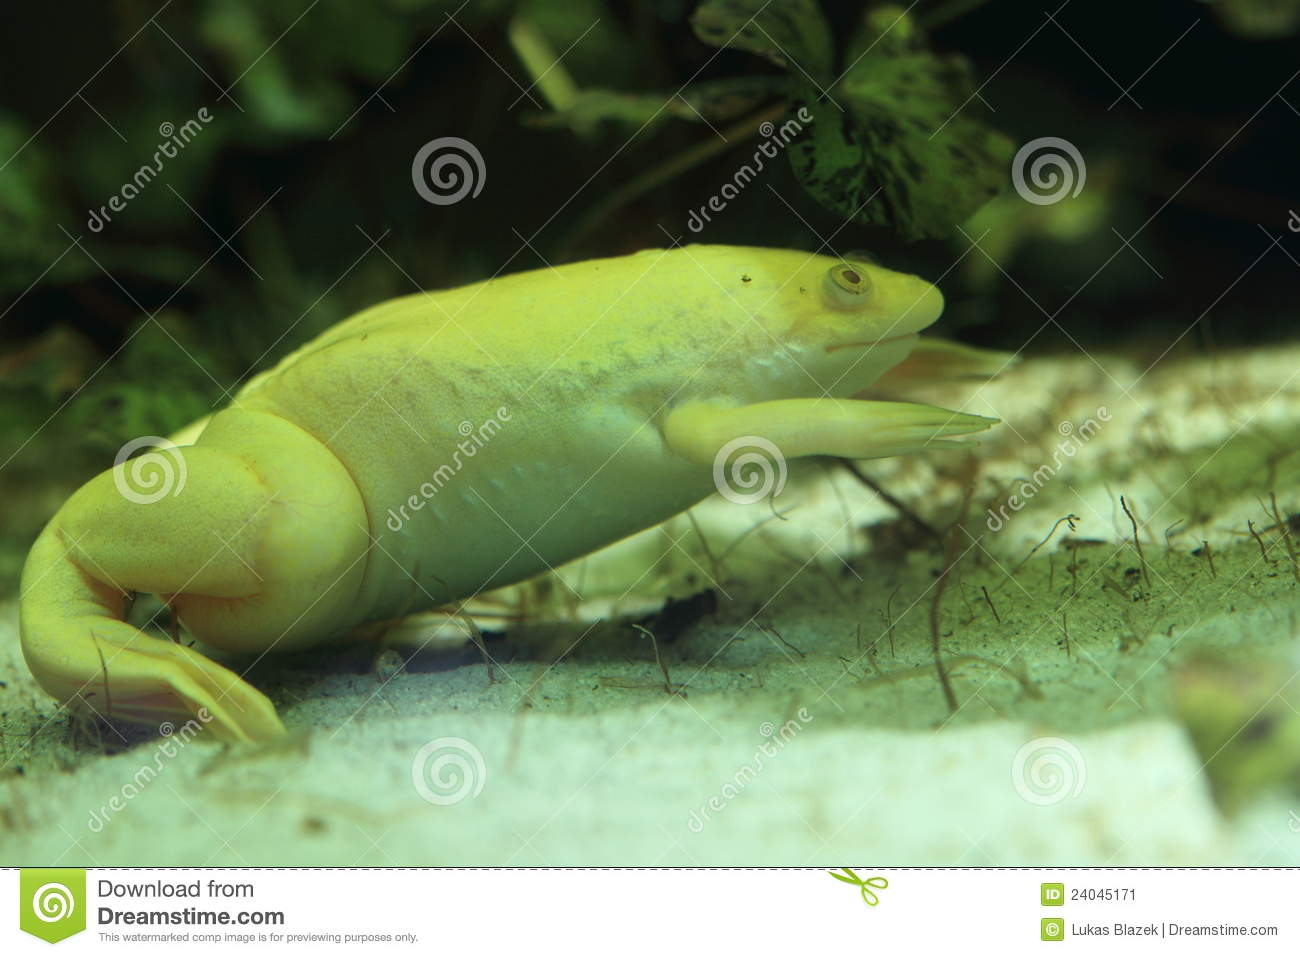 african clawed frog stock image image of frog xenopus 24045171 rh dreamstime com African Clawed Frog Habitat Female African Clawed Frog